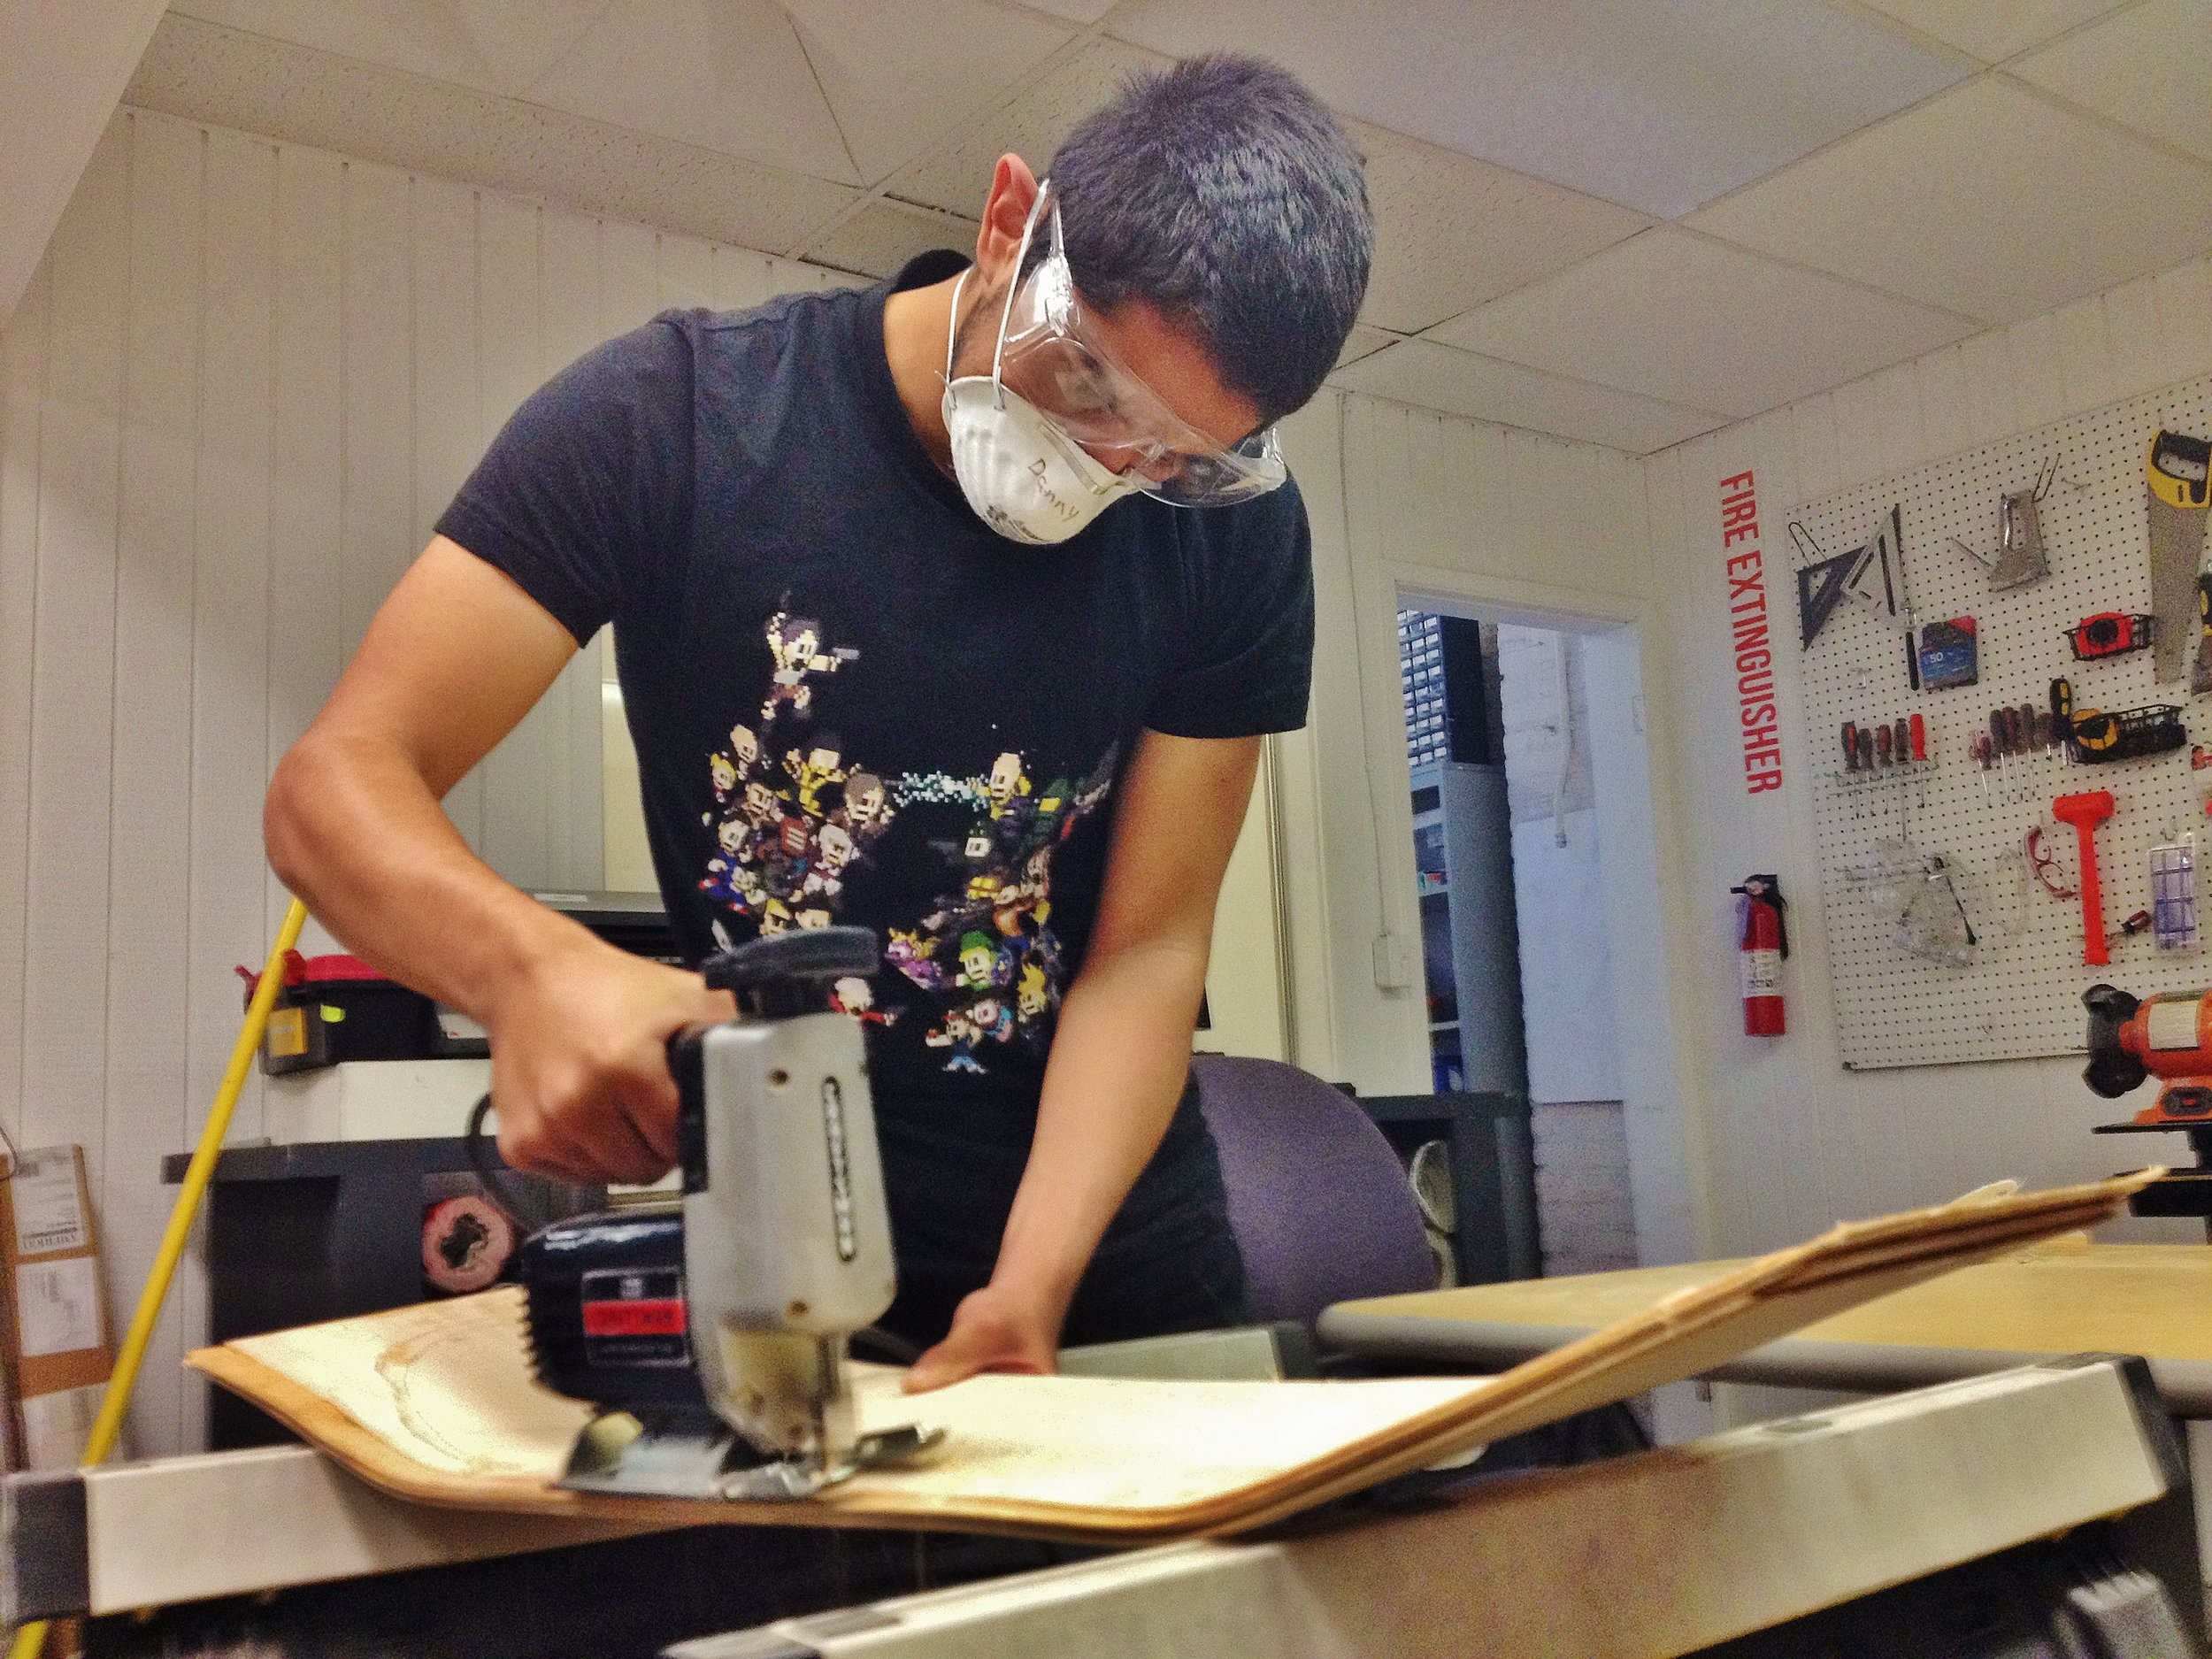 Open source student Danny cutting out a custom board to his liking.